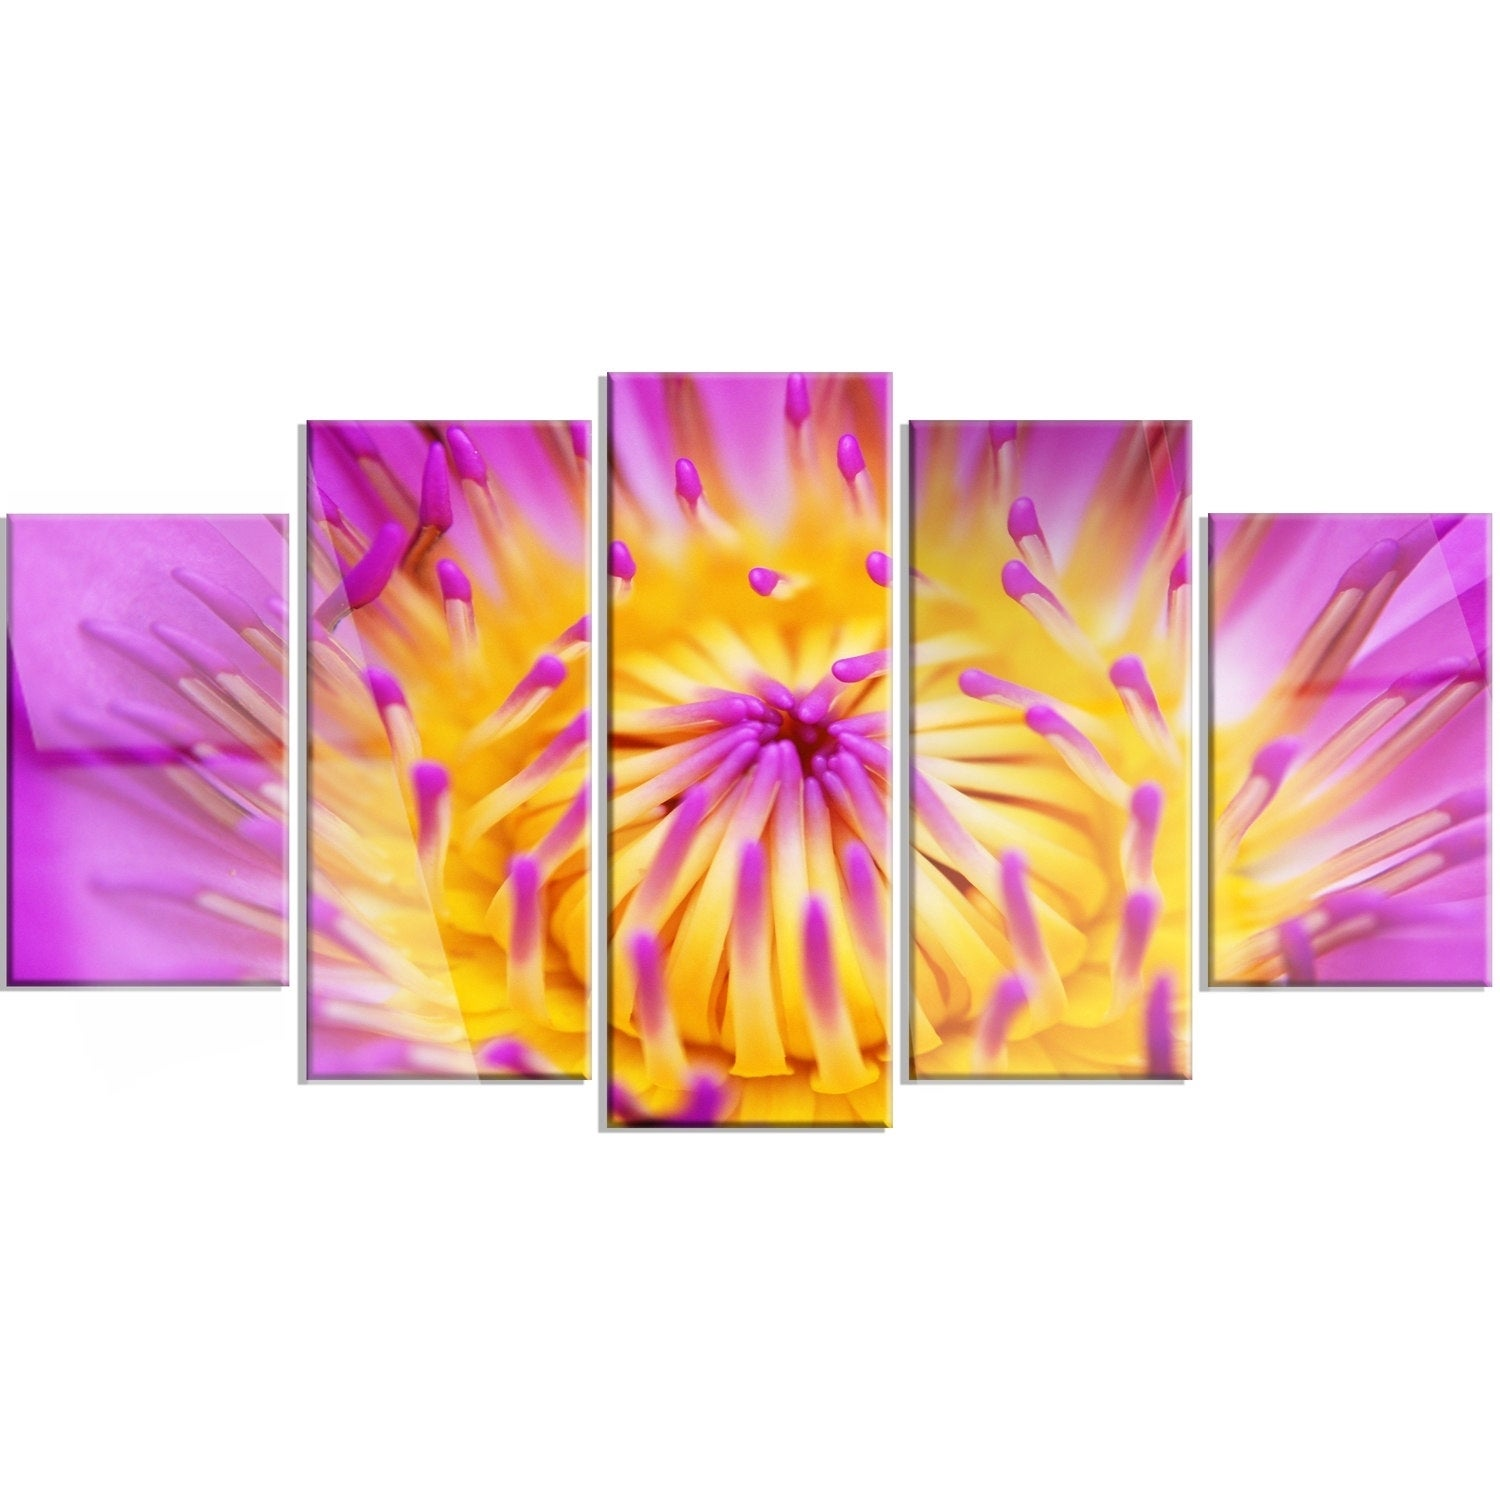 Best Brushed Metal Wall Art Contemporary - The Wall Art Decorations ...